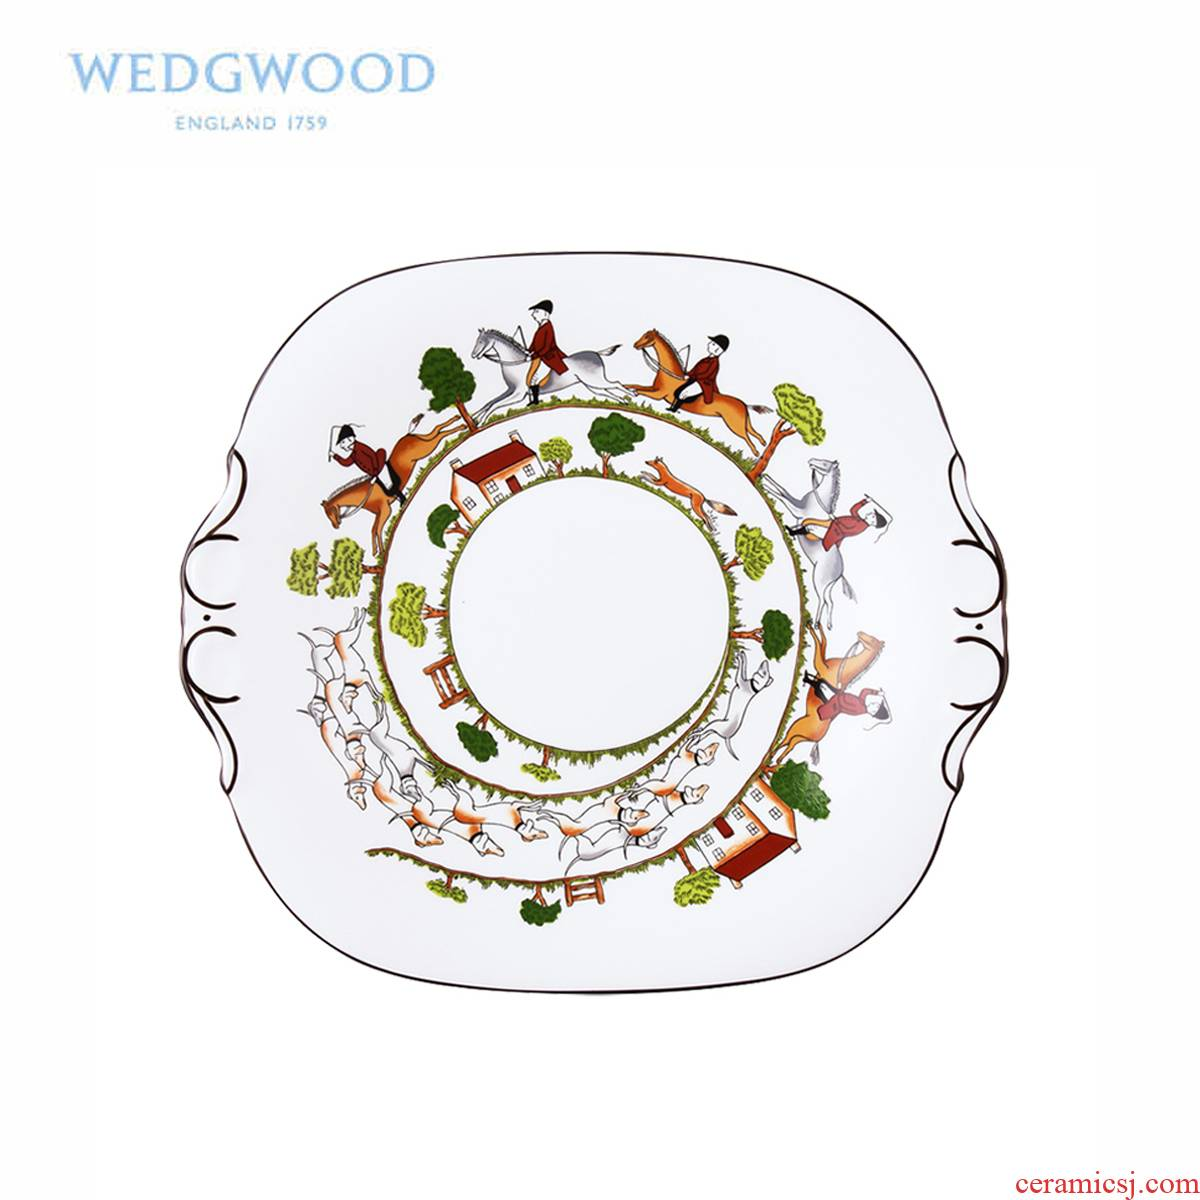 Wedgwood waterford Wedgwood Hunting Scene Hunting high - grade ipads porcelain of bread plate tableware series